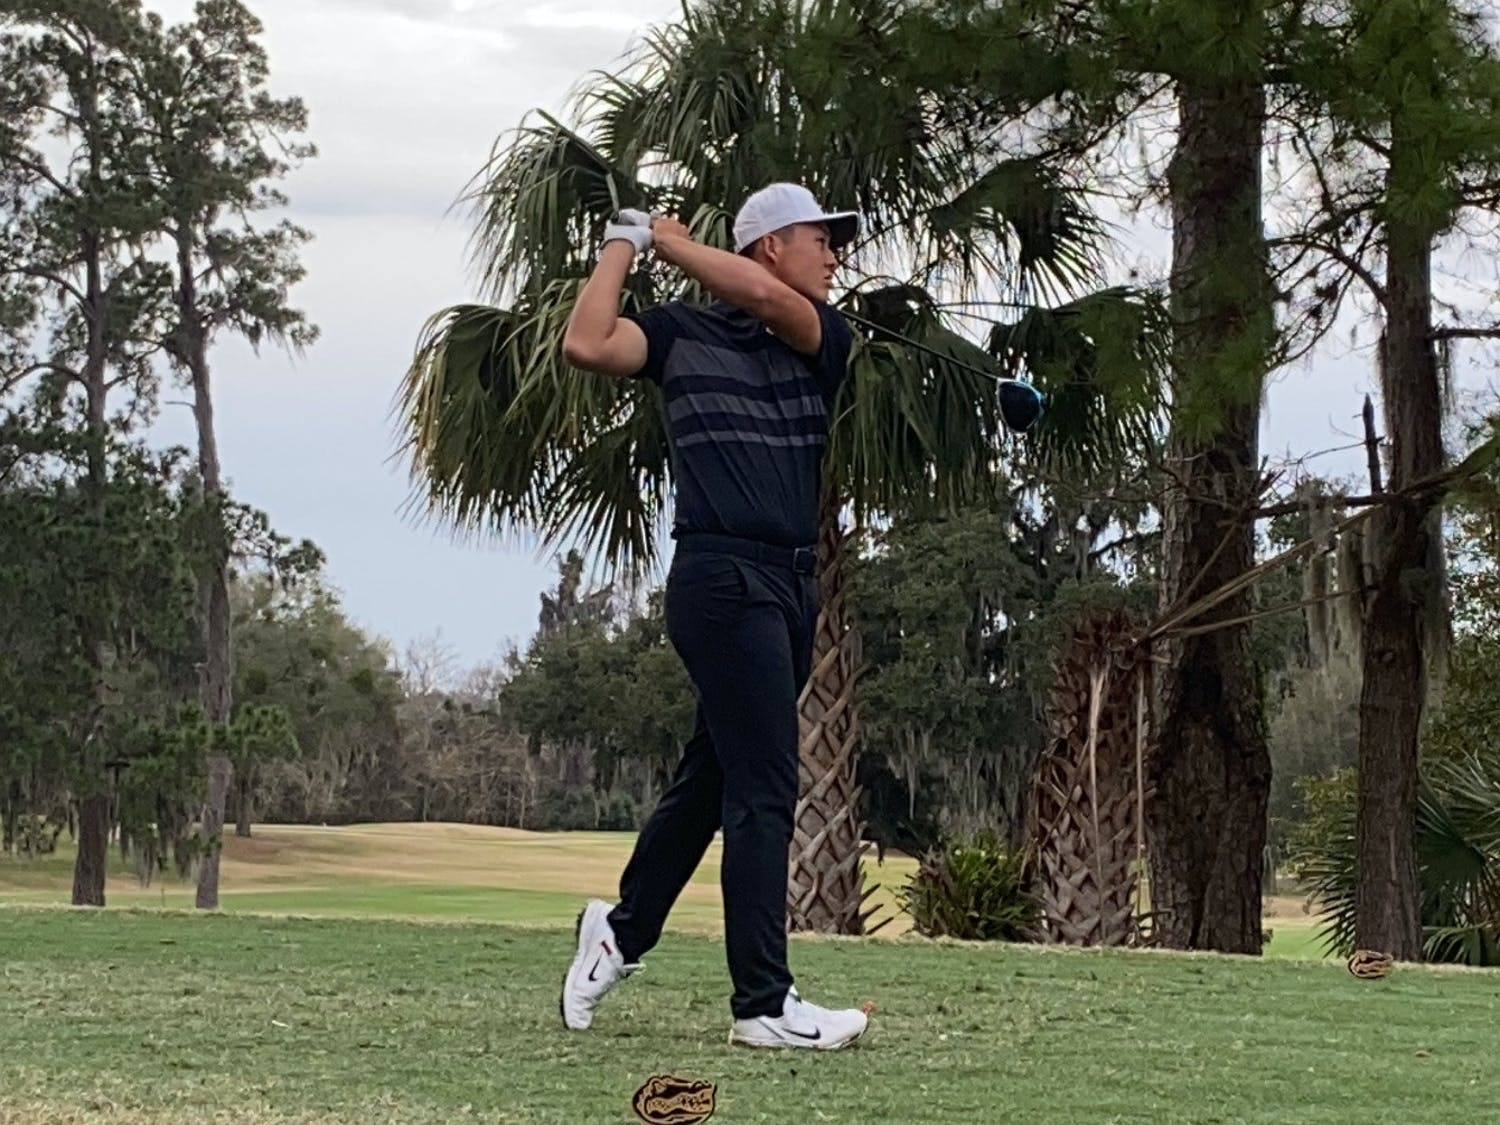 Florida's Yuxin Lin competes at the Gators Invitational in February 2021.